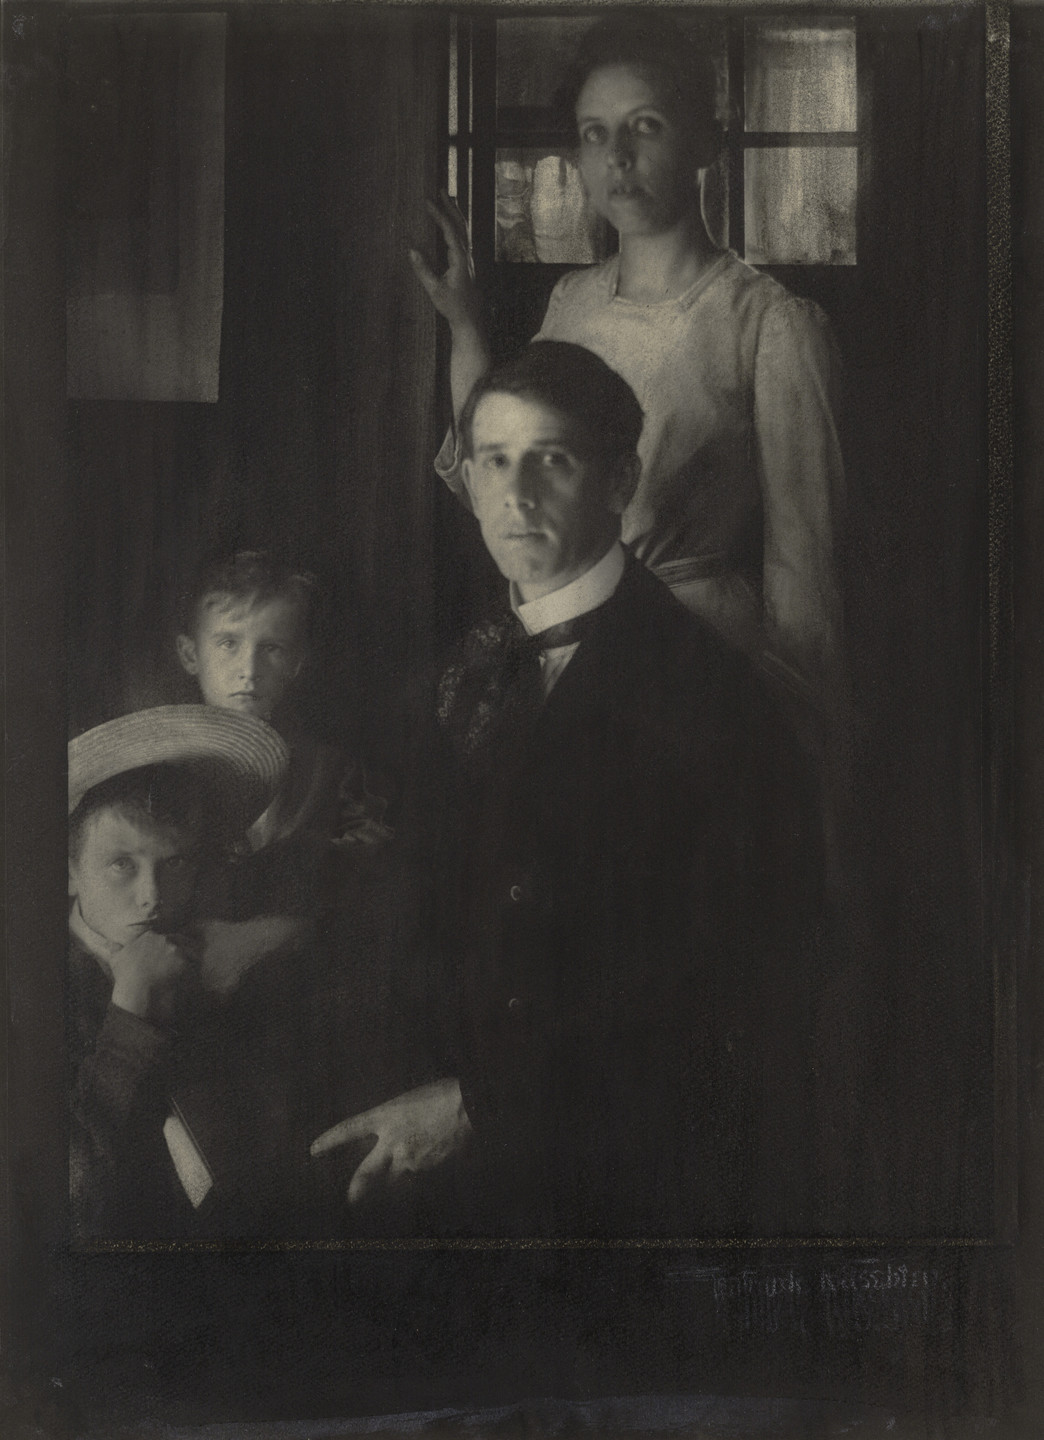 Gertrude Käsebier. Family Portrait (Clarence H. White and Family). 1902